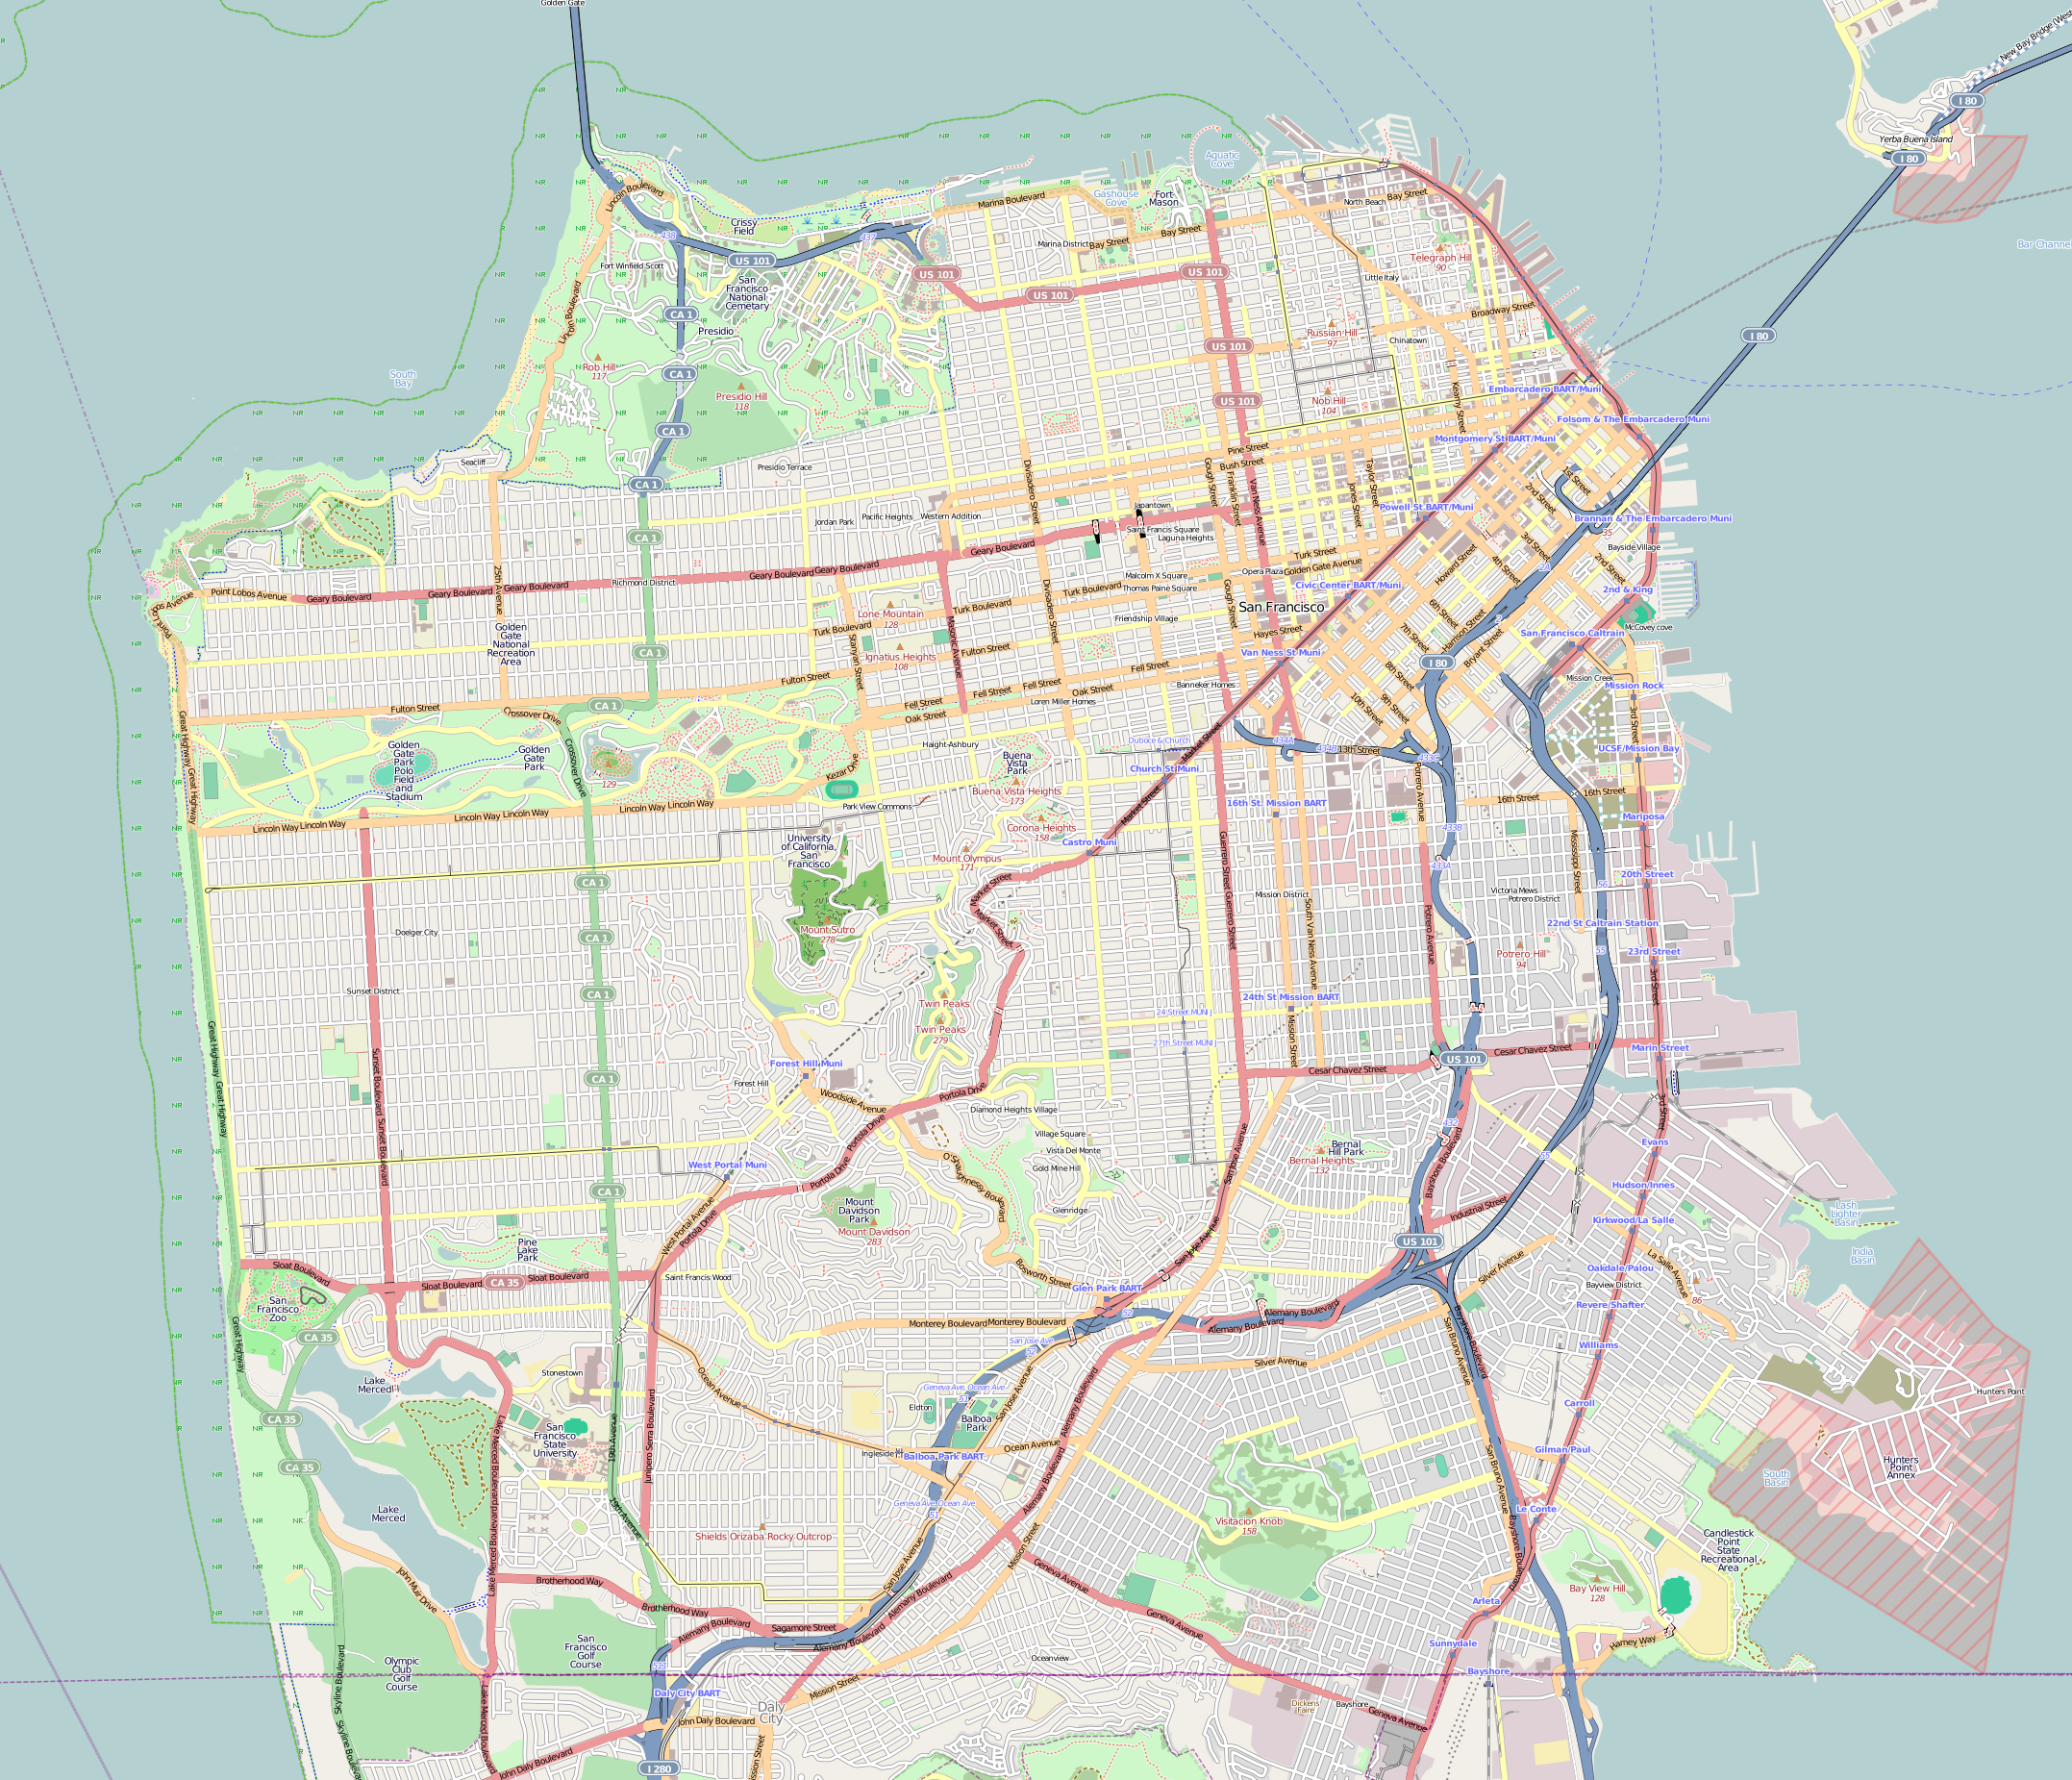 Sunset District is located in San Francisco County | Living ... on florida street maps, neighborhood street maps, san francisco street maps, local street maps, washington street maps, orlando street maps, zip code street maps, austin street maps, oakland street maps, texas street maps, home street maps, international street maps, area street maps, city street maps, world street maps, oxford street maps, miami street maps, hudson street maps,